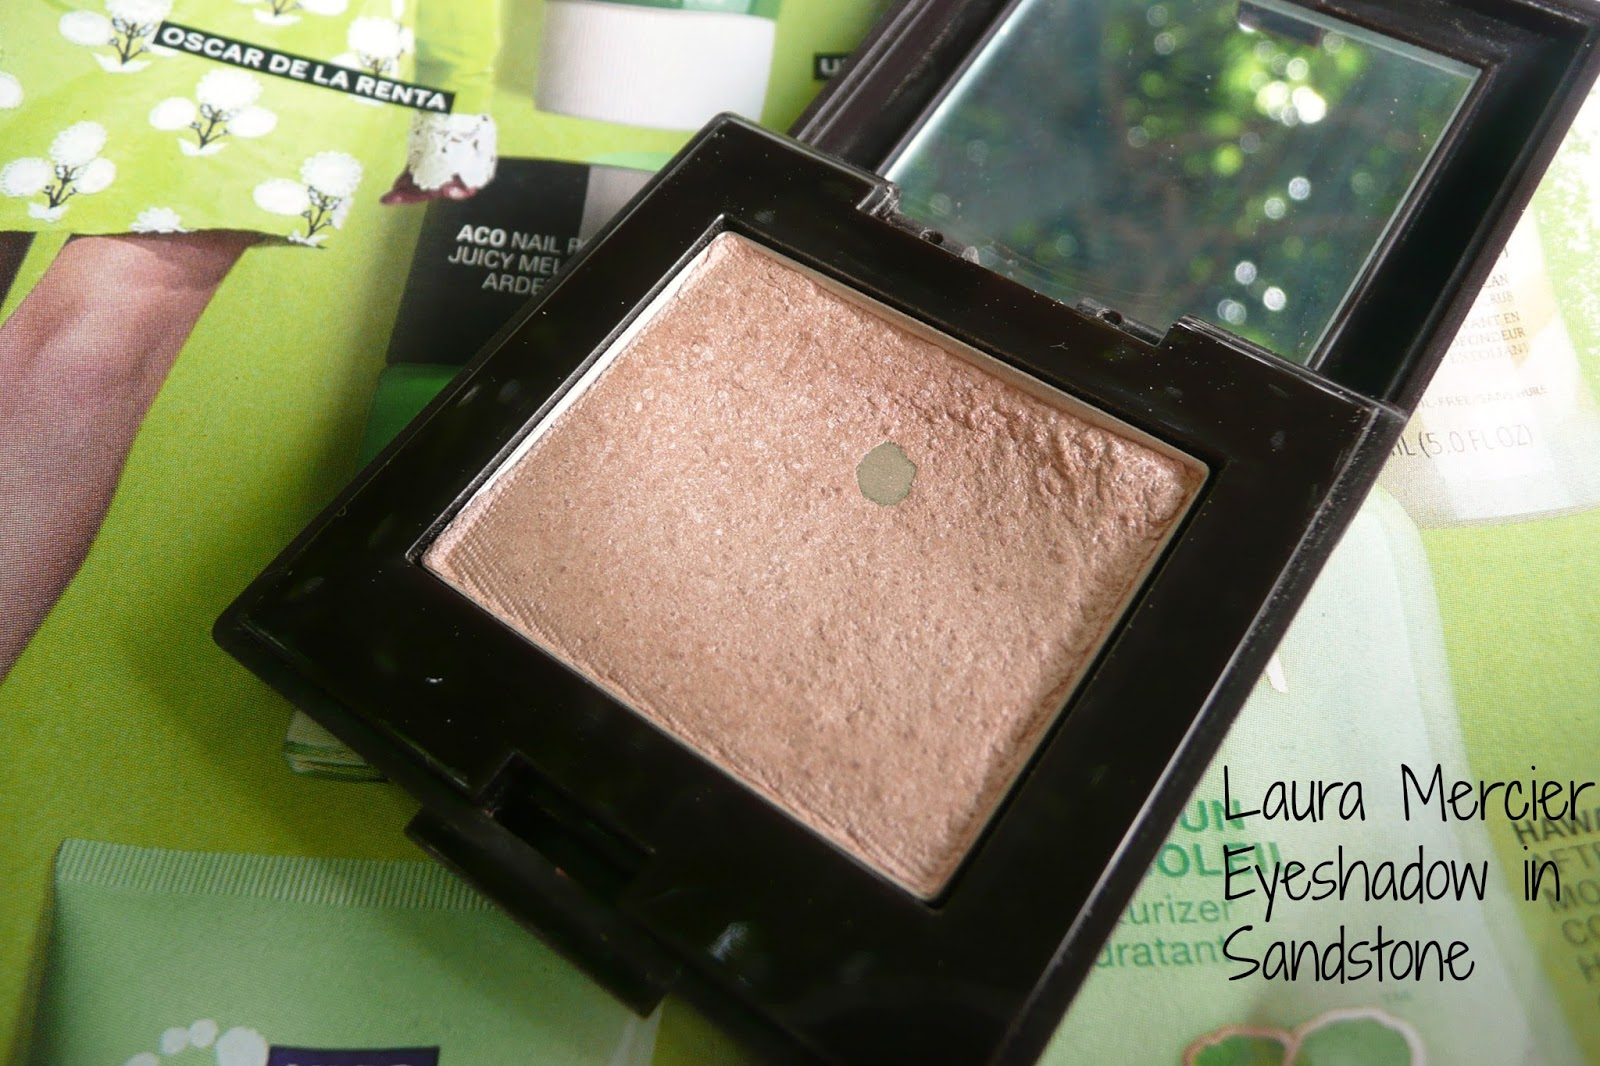 Laura Mercier Sandstone Eyeshadow